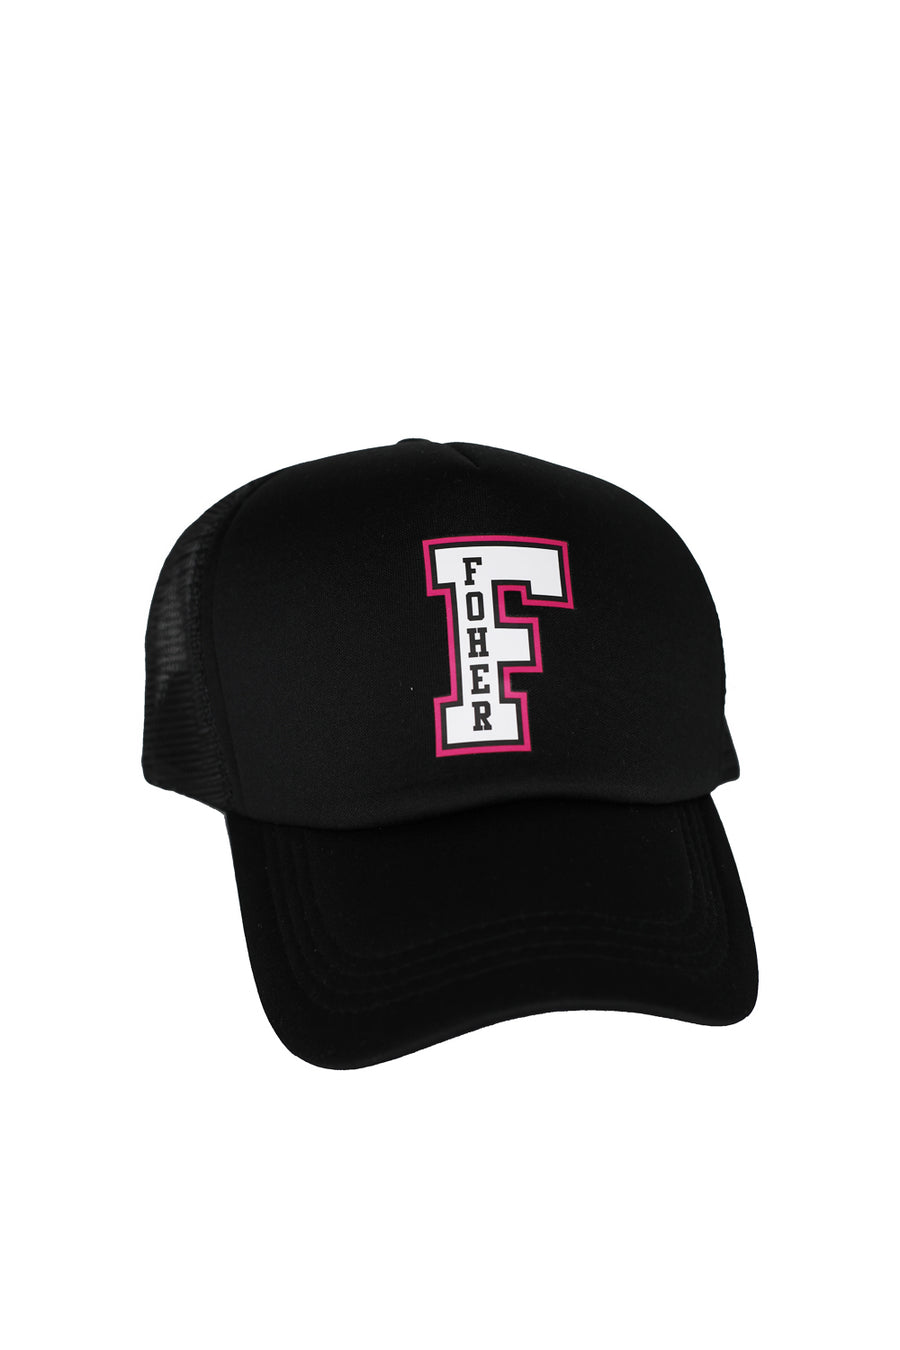 FOHER Co Black F-Logo Trucker